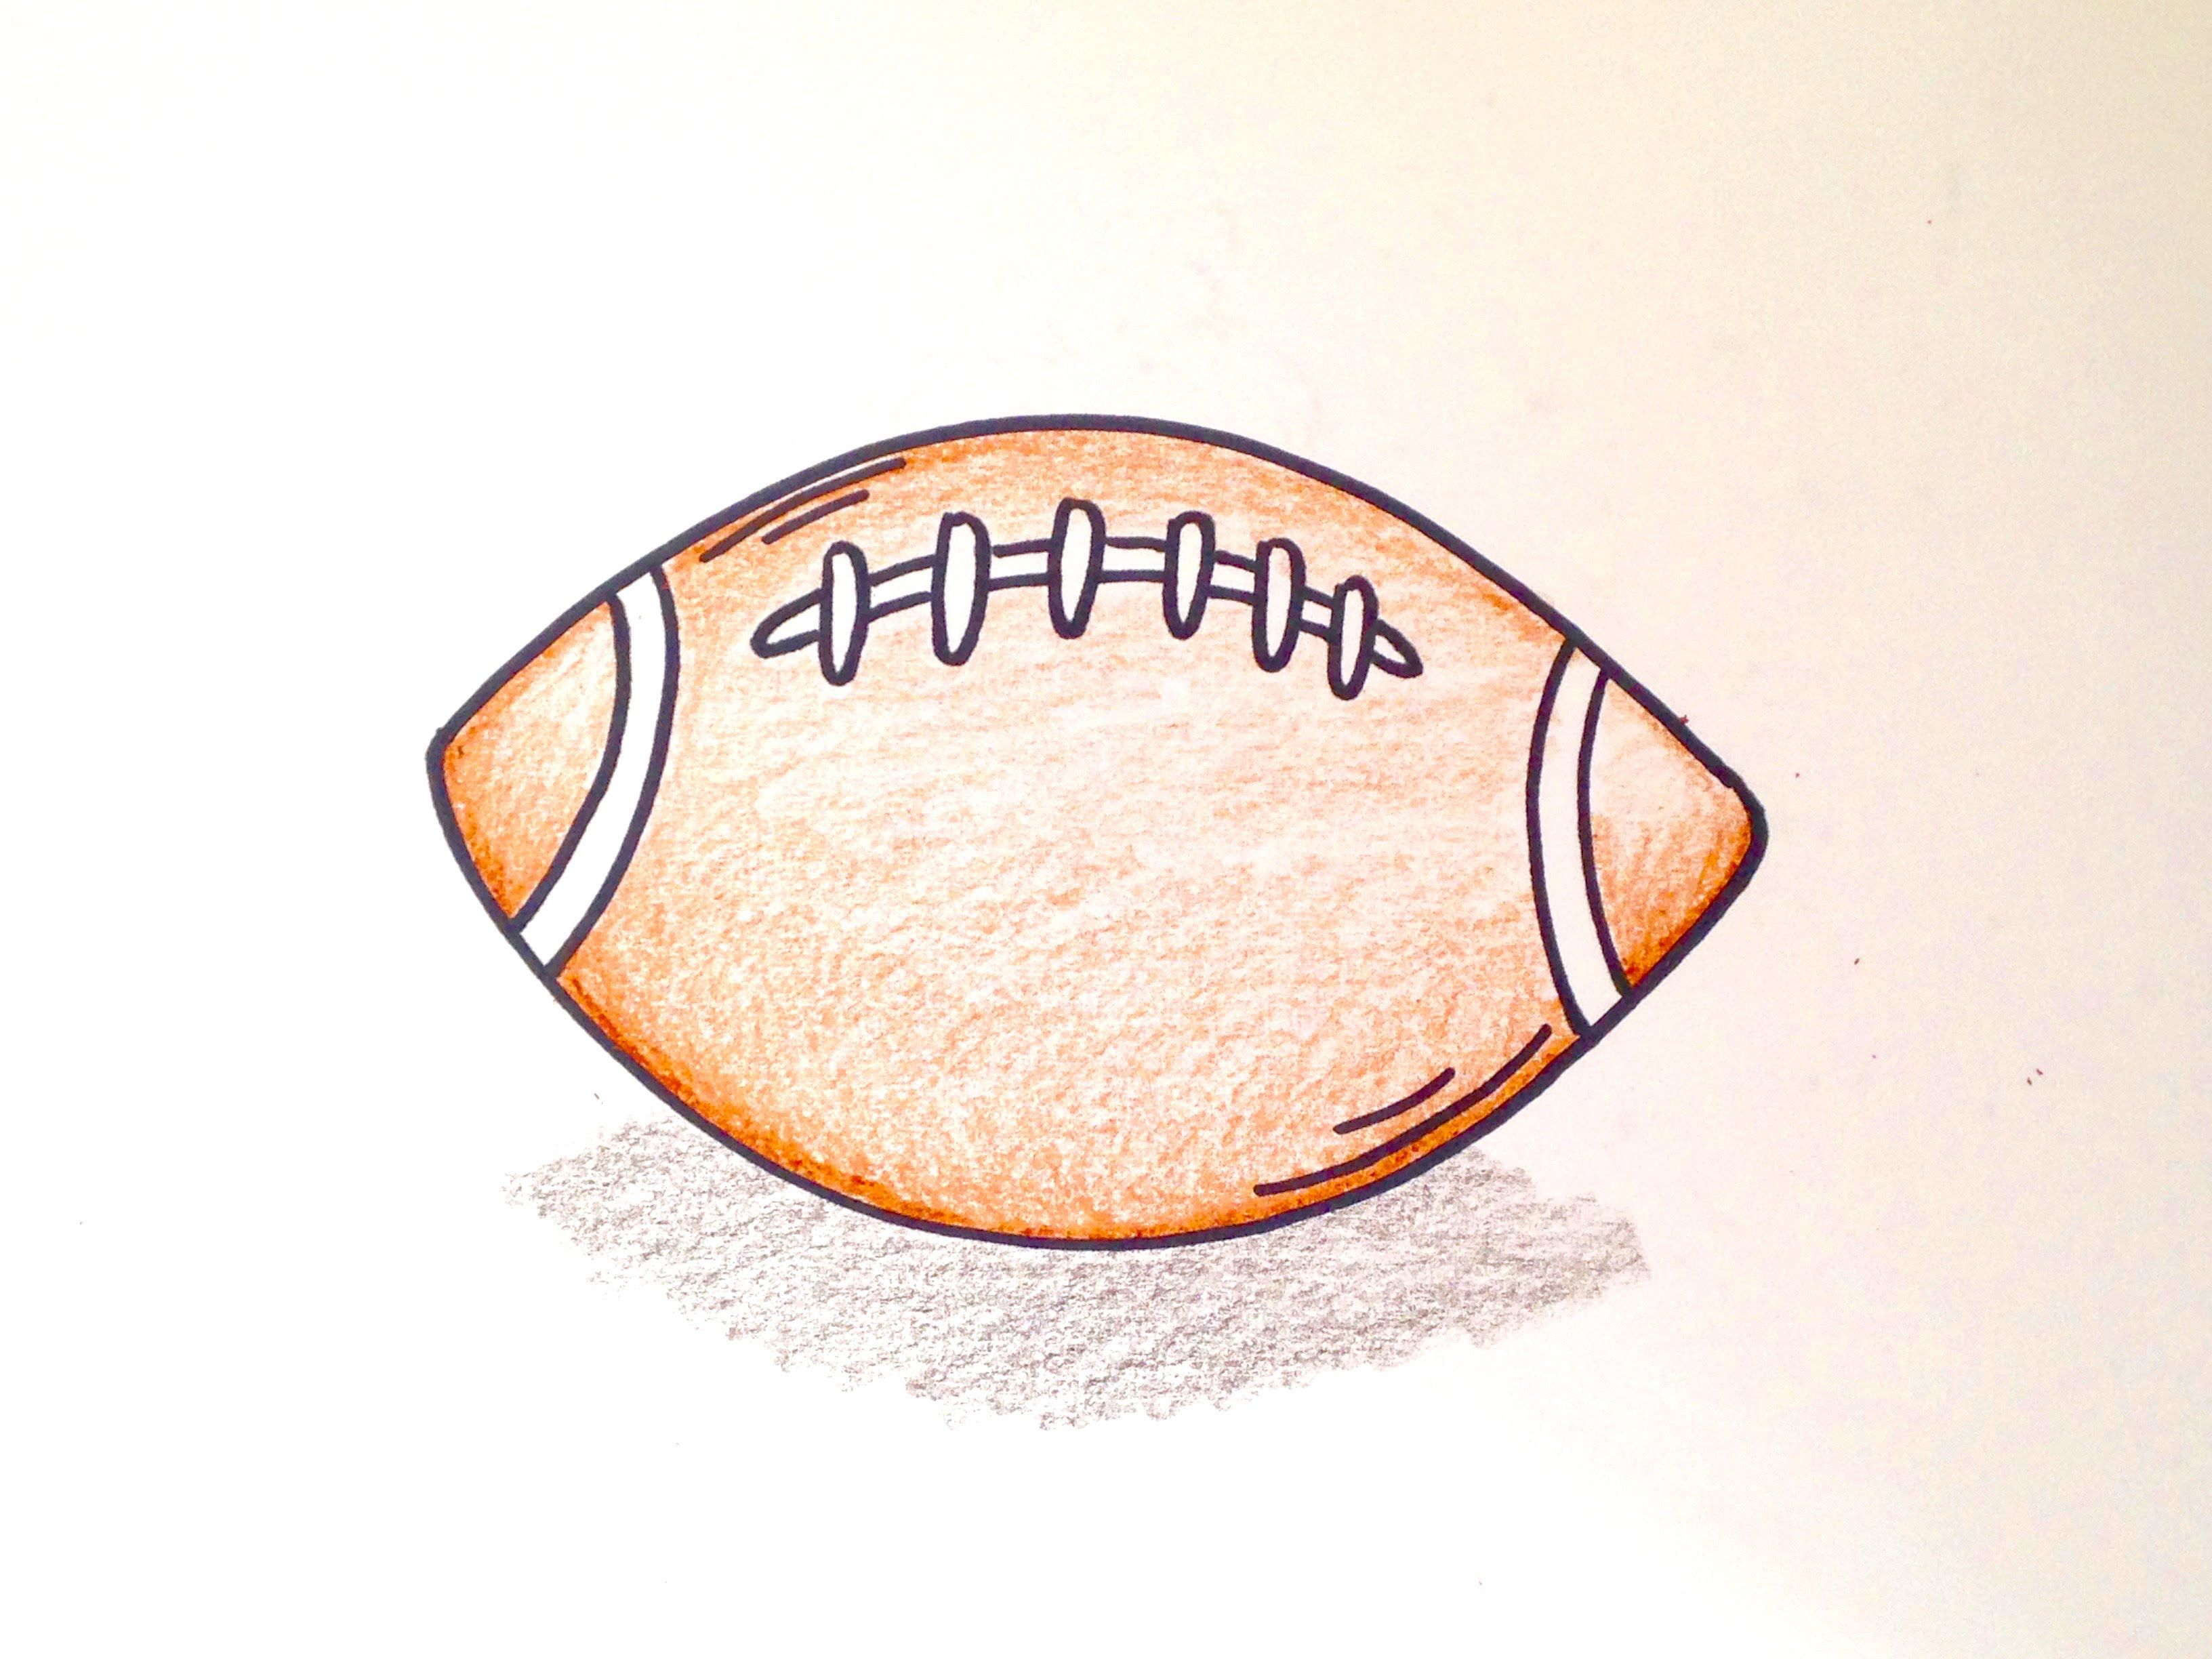 3264x2448 Drawing Lesson How To Draw Football. Grab Paper, Crayons,nd